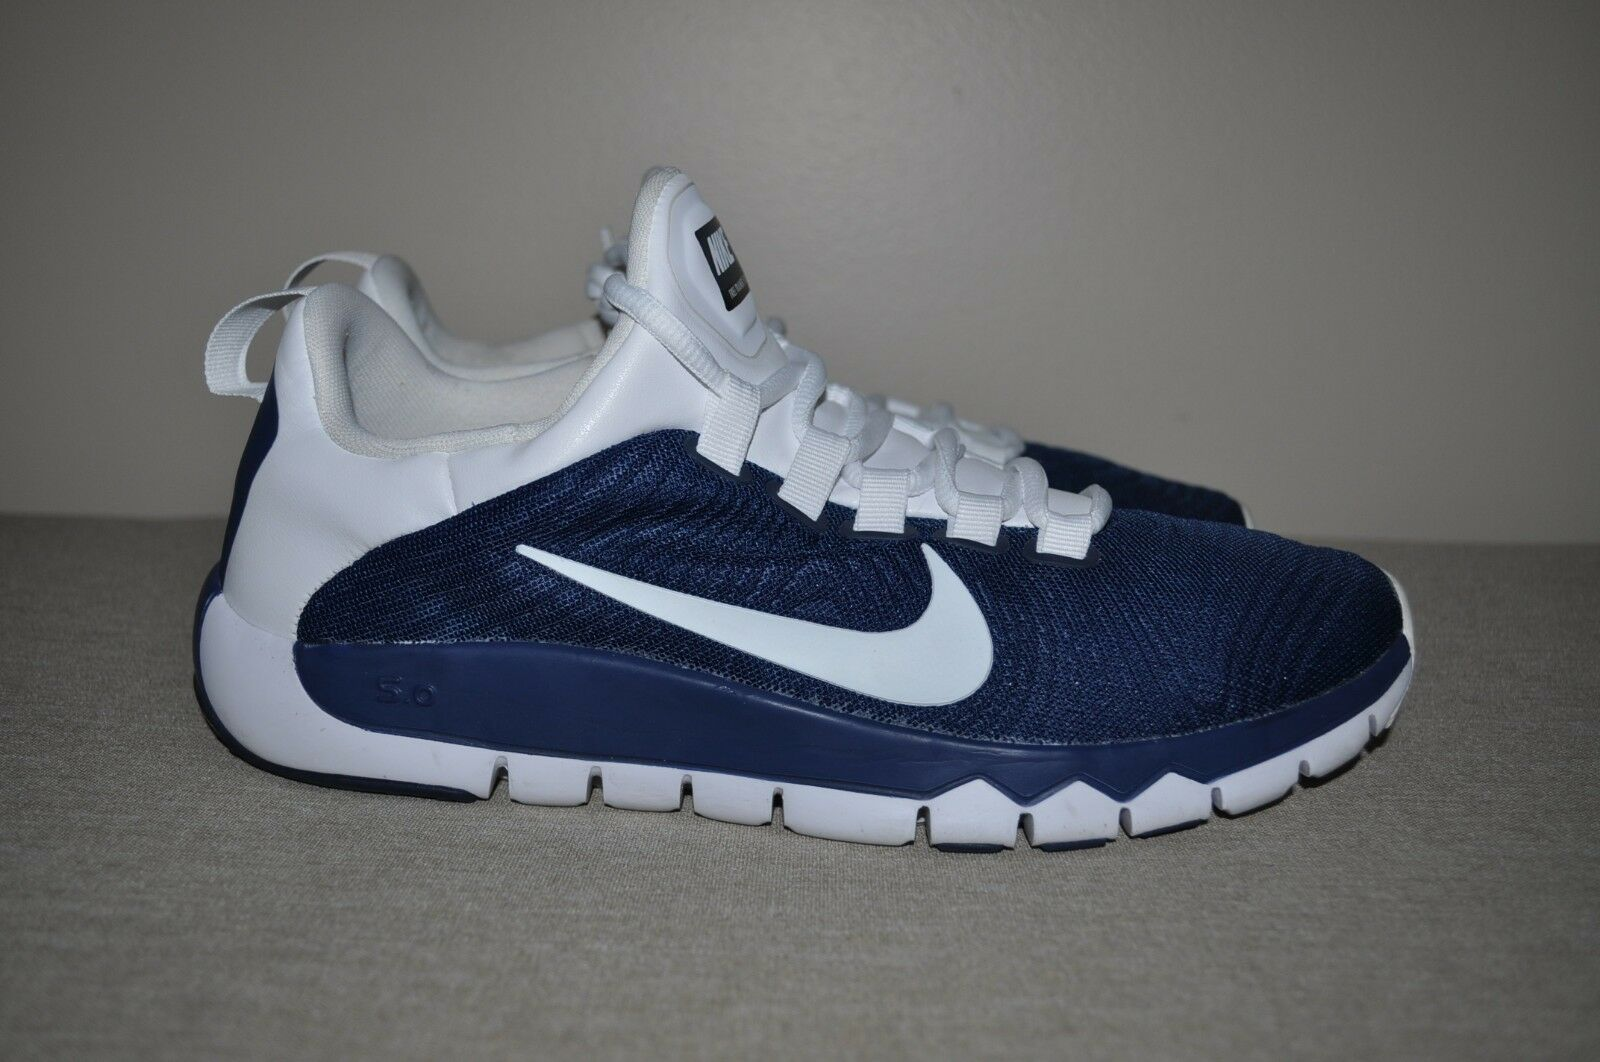 Nike Men's Free Trainer 5.0 Navy bluee & White Athletic shoes Size 9